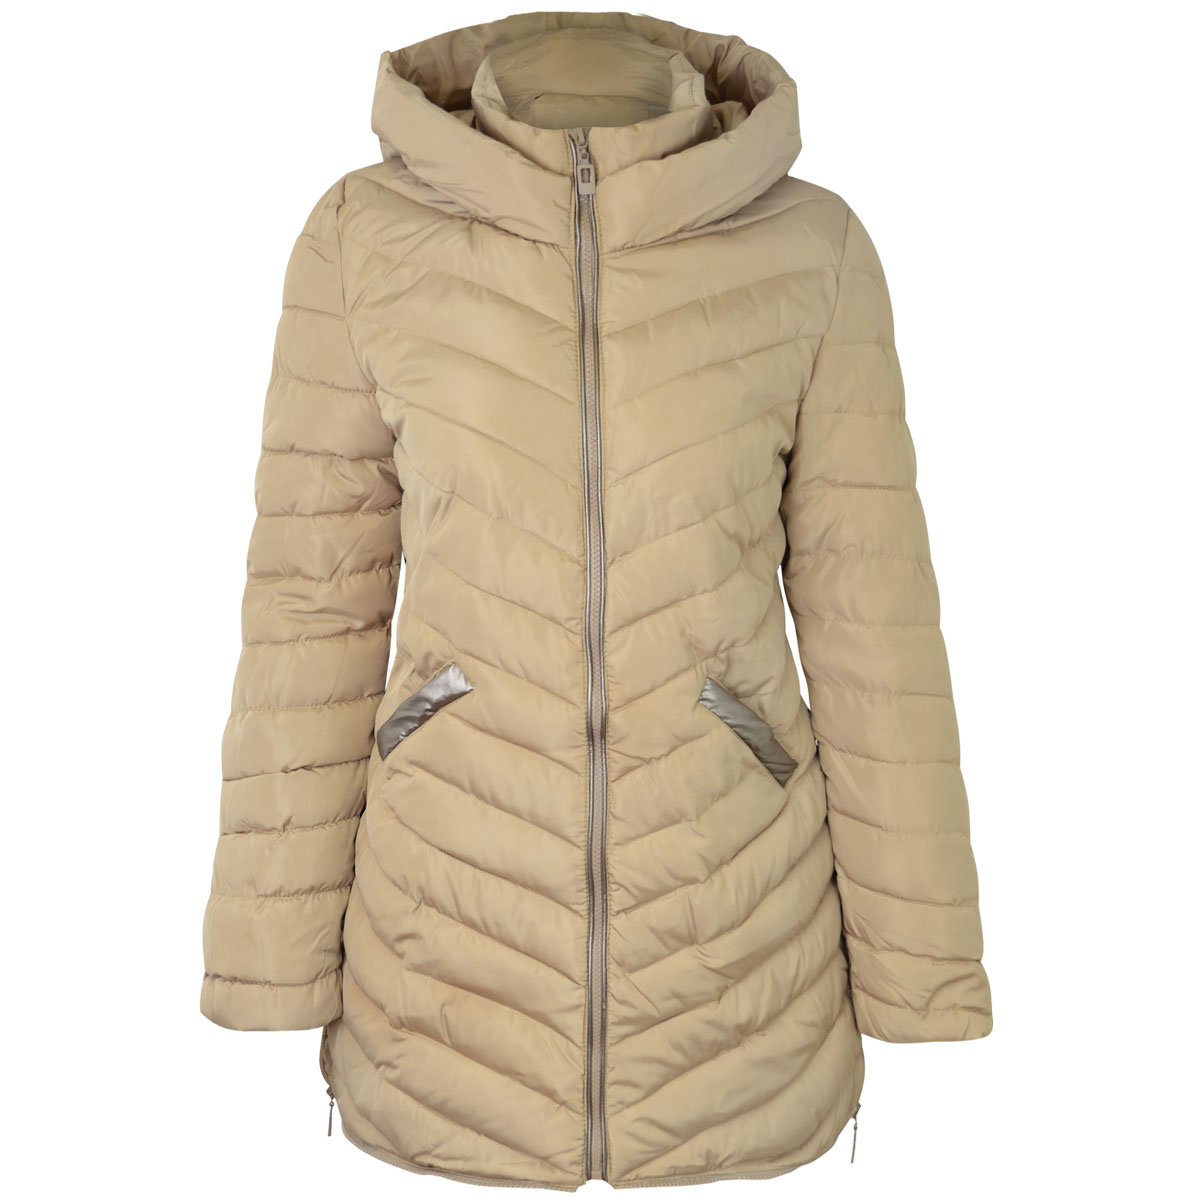 Find great deals on eBay for women padded jacket. Shop with confidence. Skip to main content. eBay: New Listing Down Coat Womens Padded Winter Hooded Jacket SZ-Large. Brand New. $ Buy It Now +$ shipping. New Ladies Quilted Padded Button Zip Jacket Casual Women's Coat Plus Size 8 .